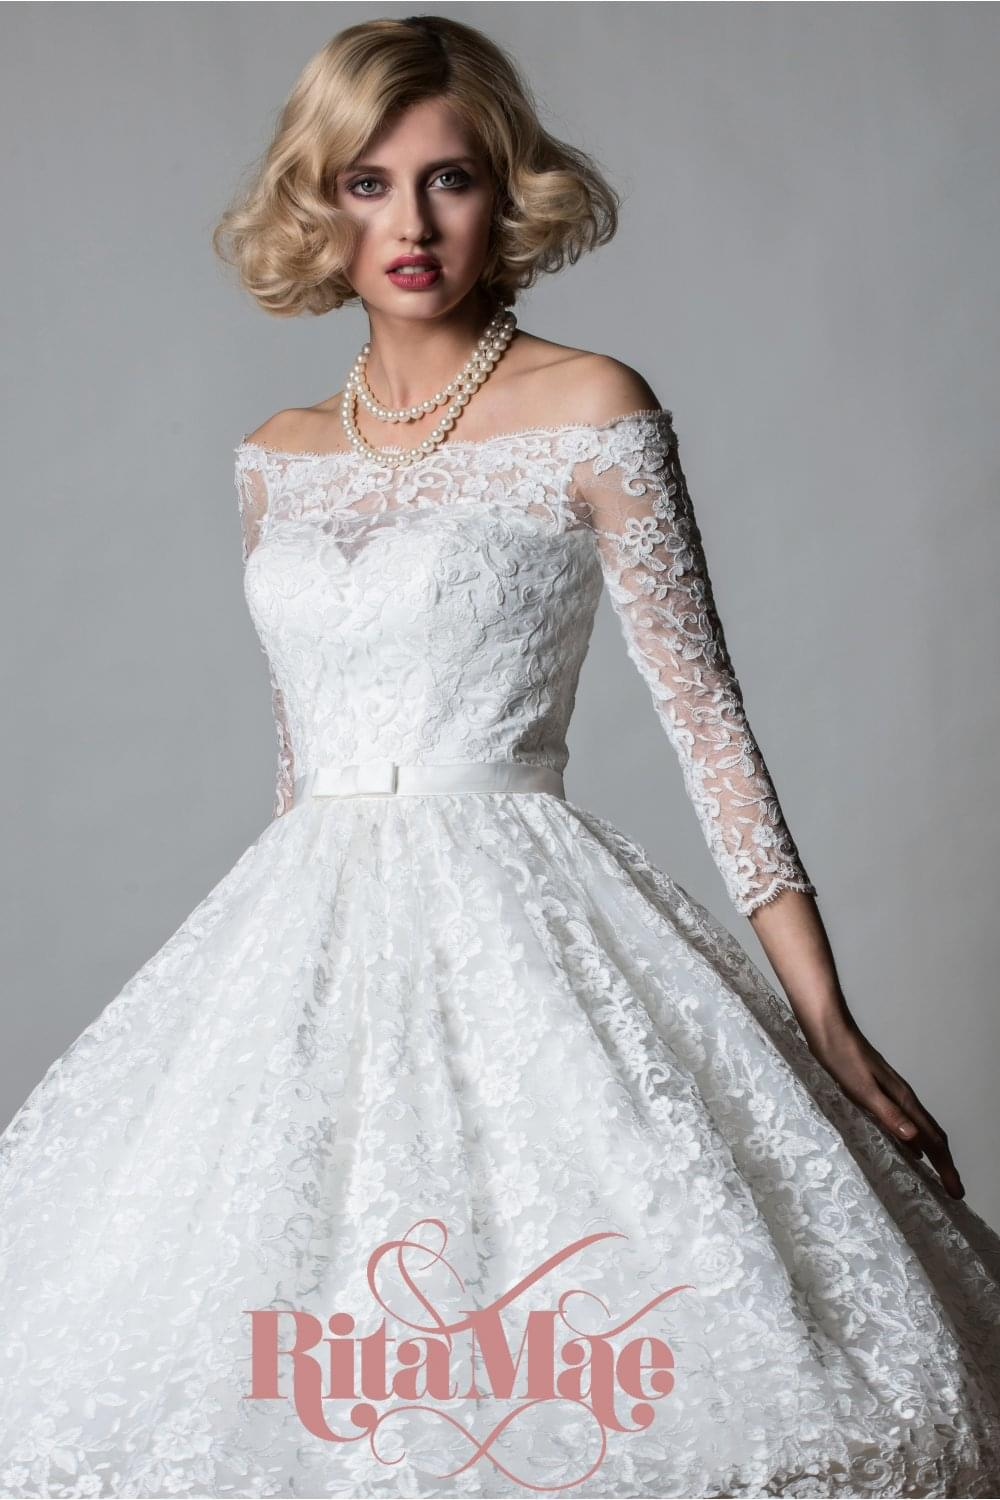 Lorna Tea Length Lace Off Shoulder Vintage Style Wedding Dress